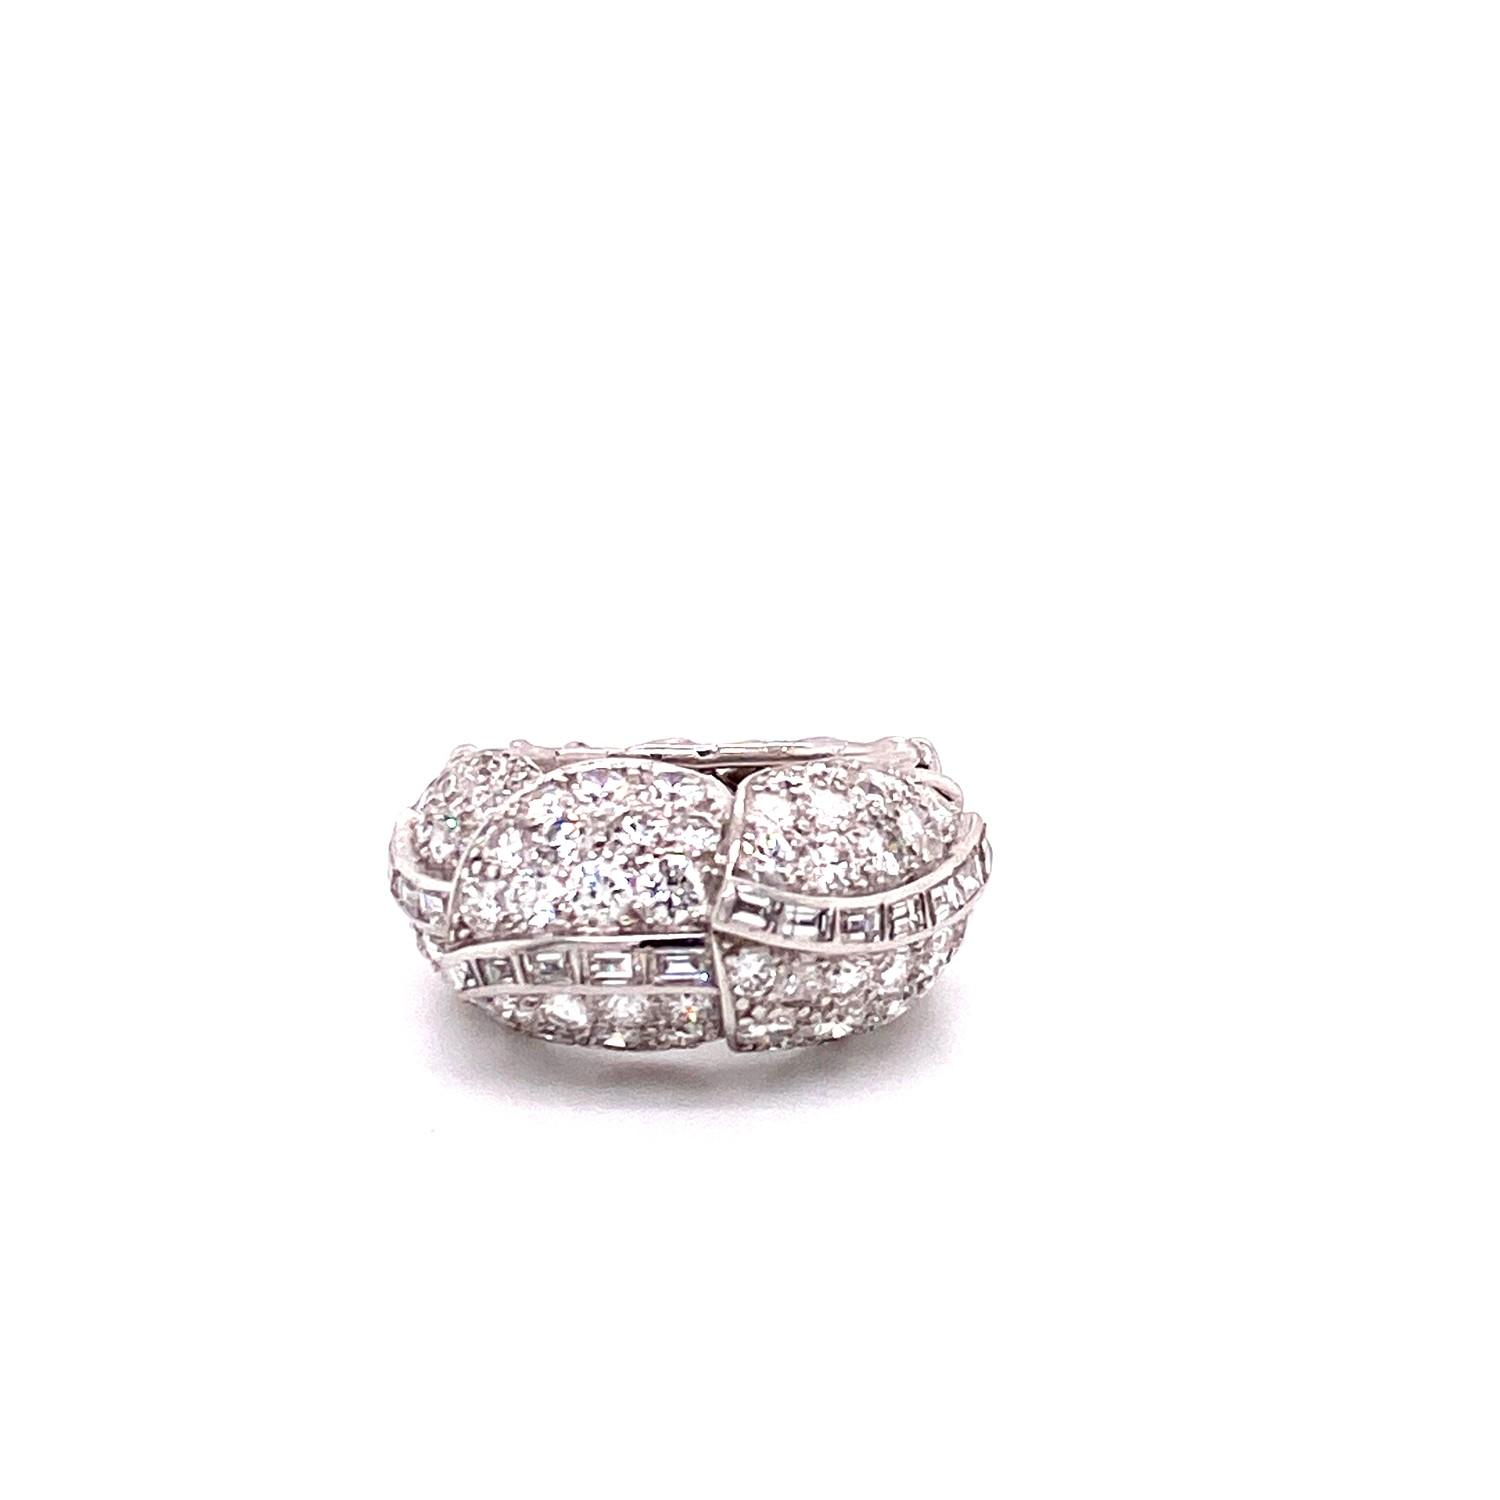 A 1950's Cartier Cocktail Ring, Cartier baguette and brilliant cut pave set dome top bombe ring - Image 4 of 8